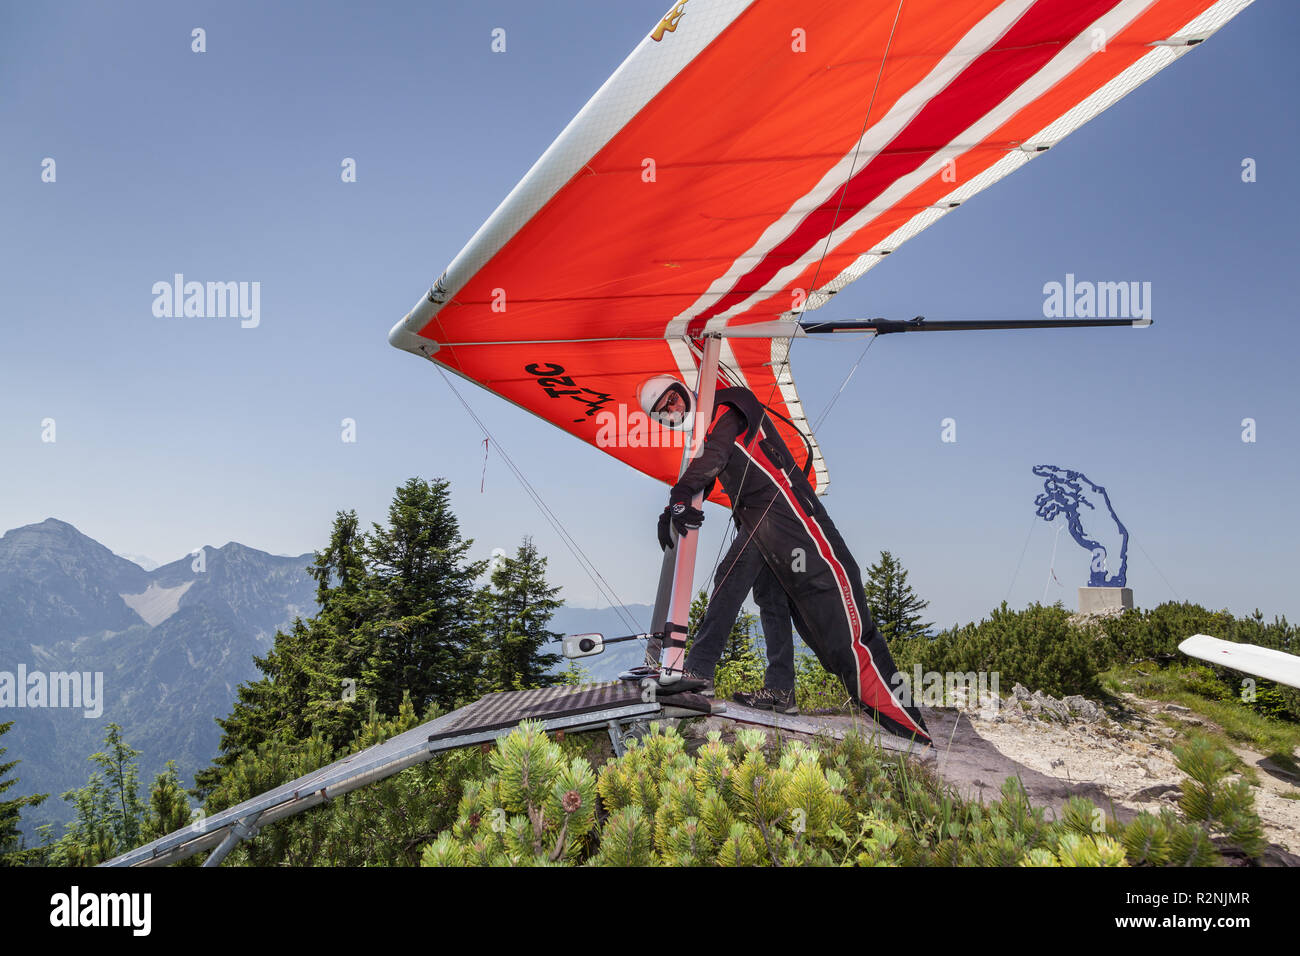 Hang glider in front of artwork Adams hand from Angerer the Younger one on the Rauschberg, Ruhpolding, Chiemgau Alps, Chiemgau, Upper Bavaria, Bavaria, southern Germany, Germany, Europe - Stock Image